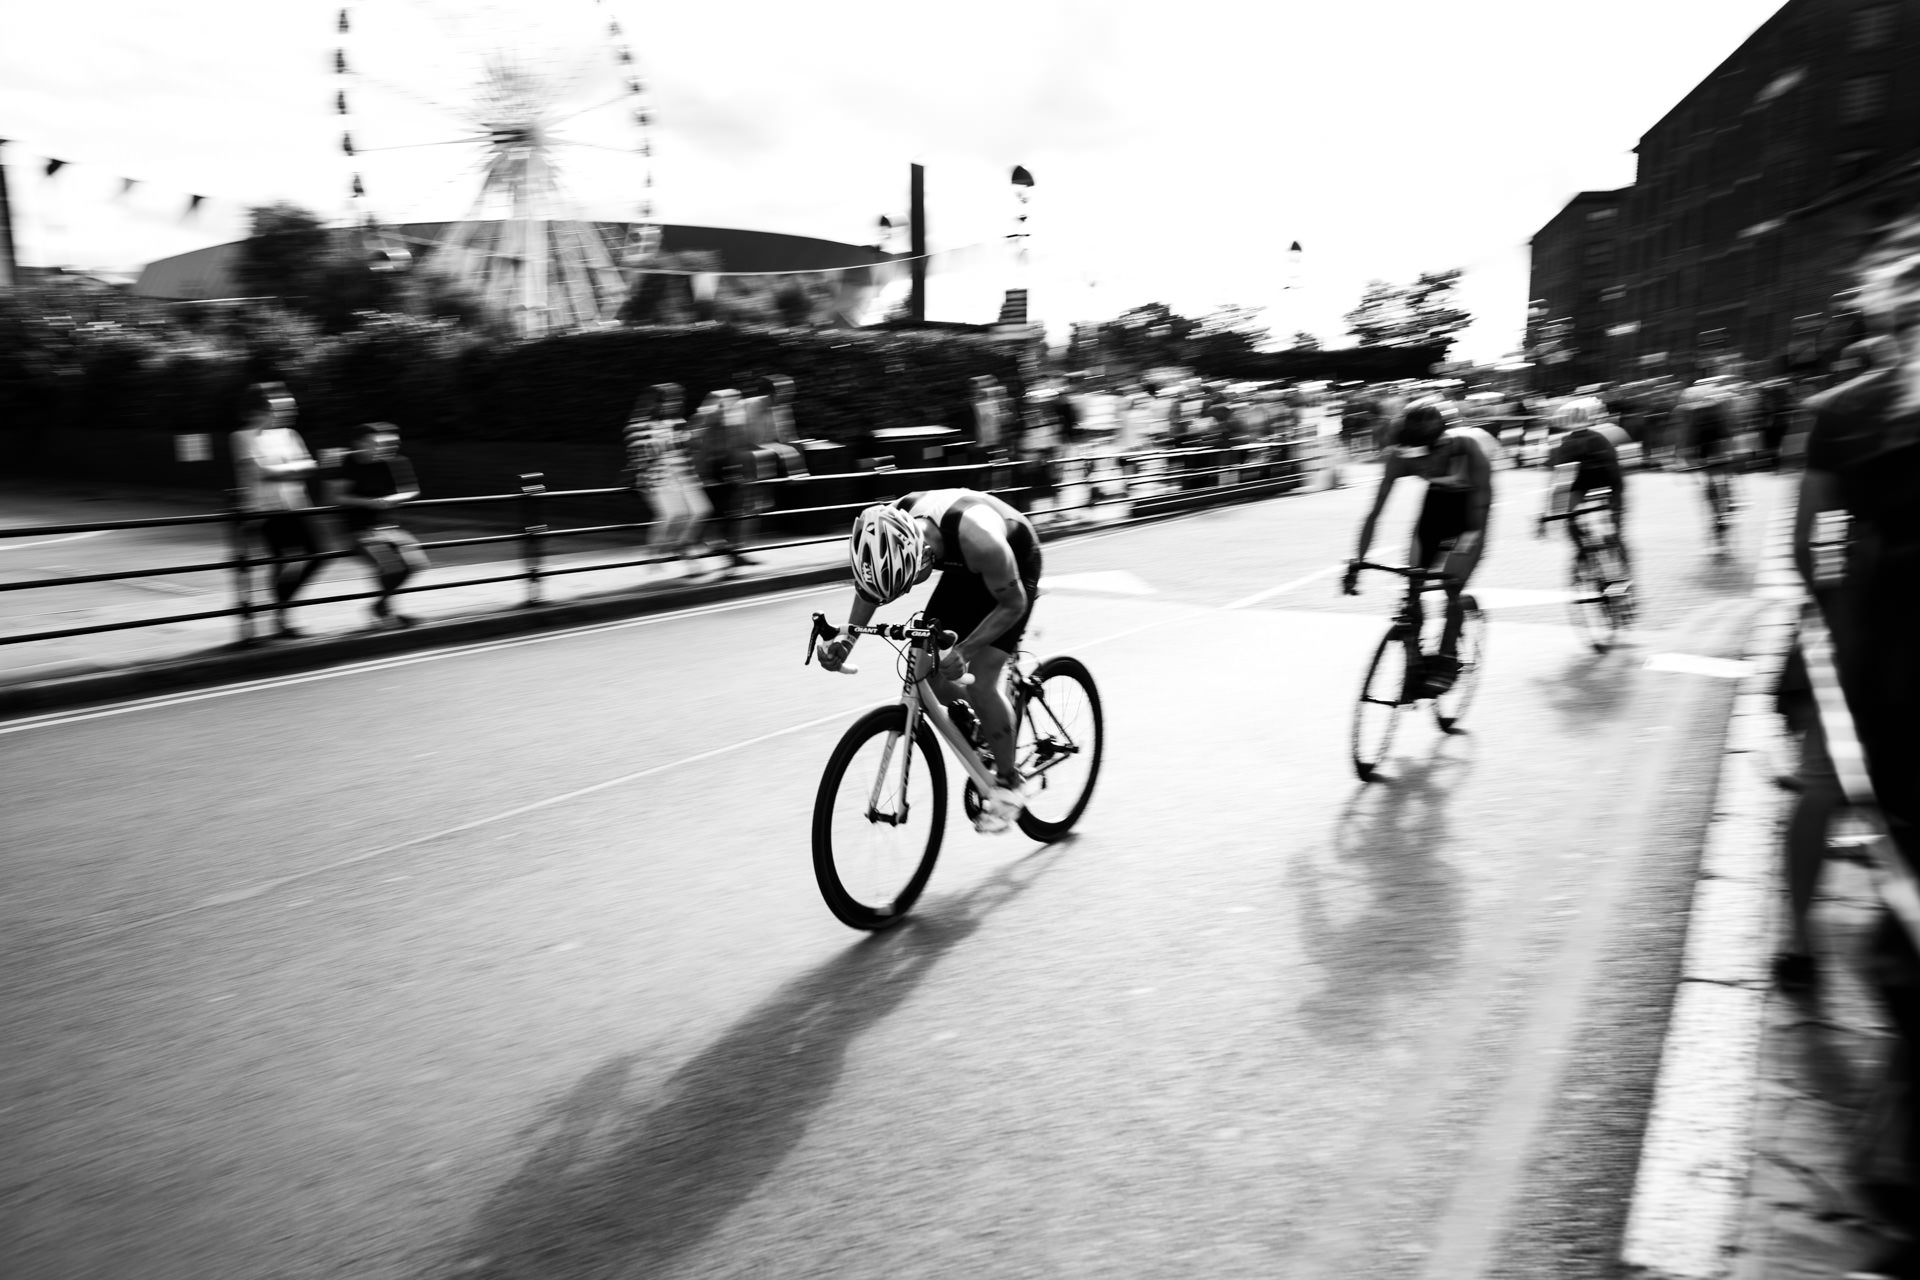 …we stumbled across the Tri Liverpool triathlon event. This cyclist digs deep to power out of the bend...